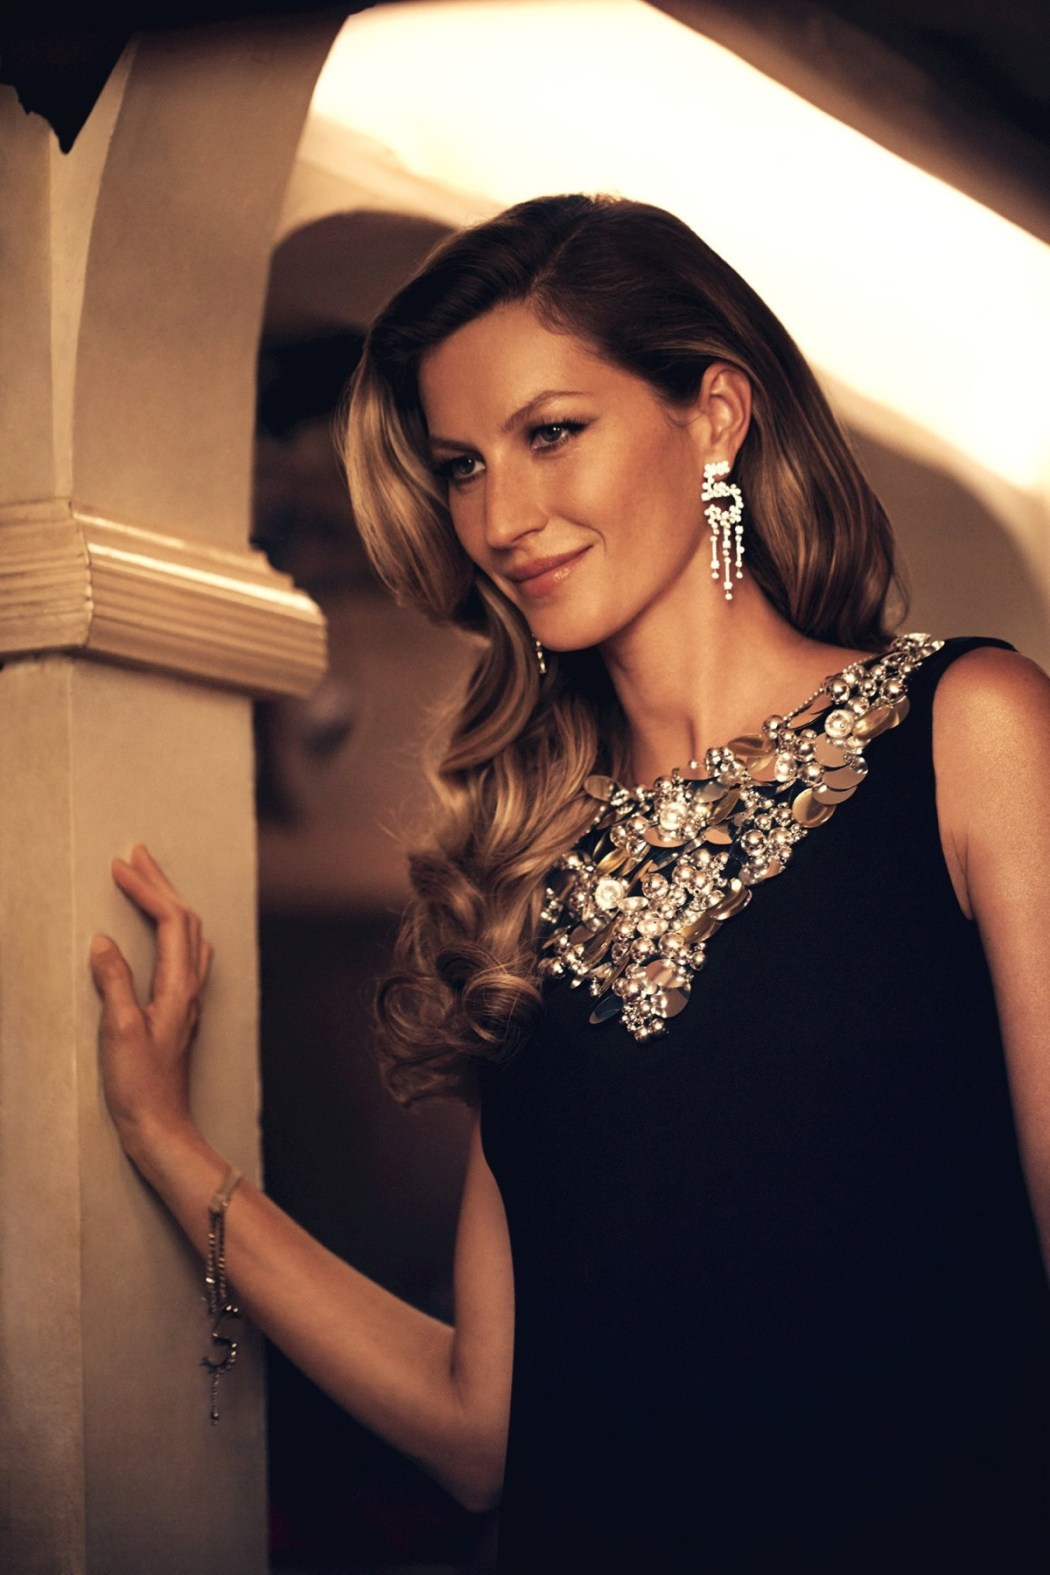 Chanel N 5 Film Featuring Gisele Bundchen 6